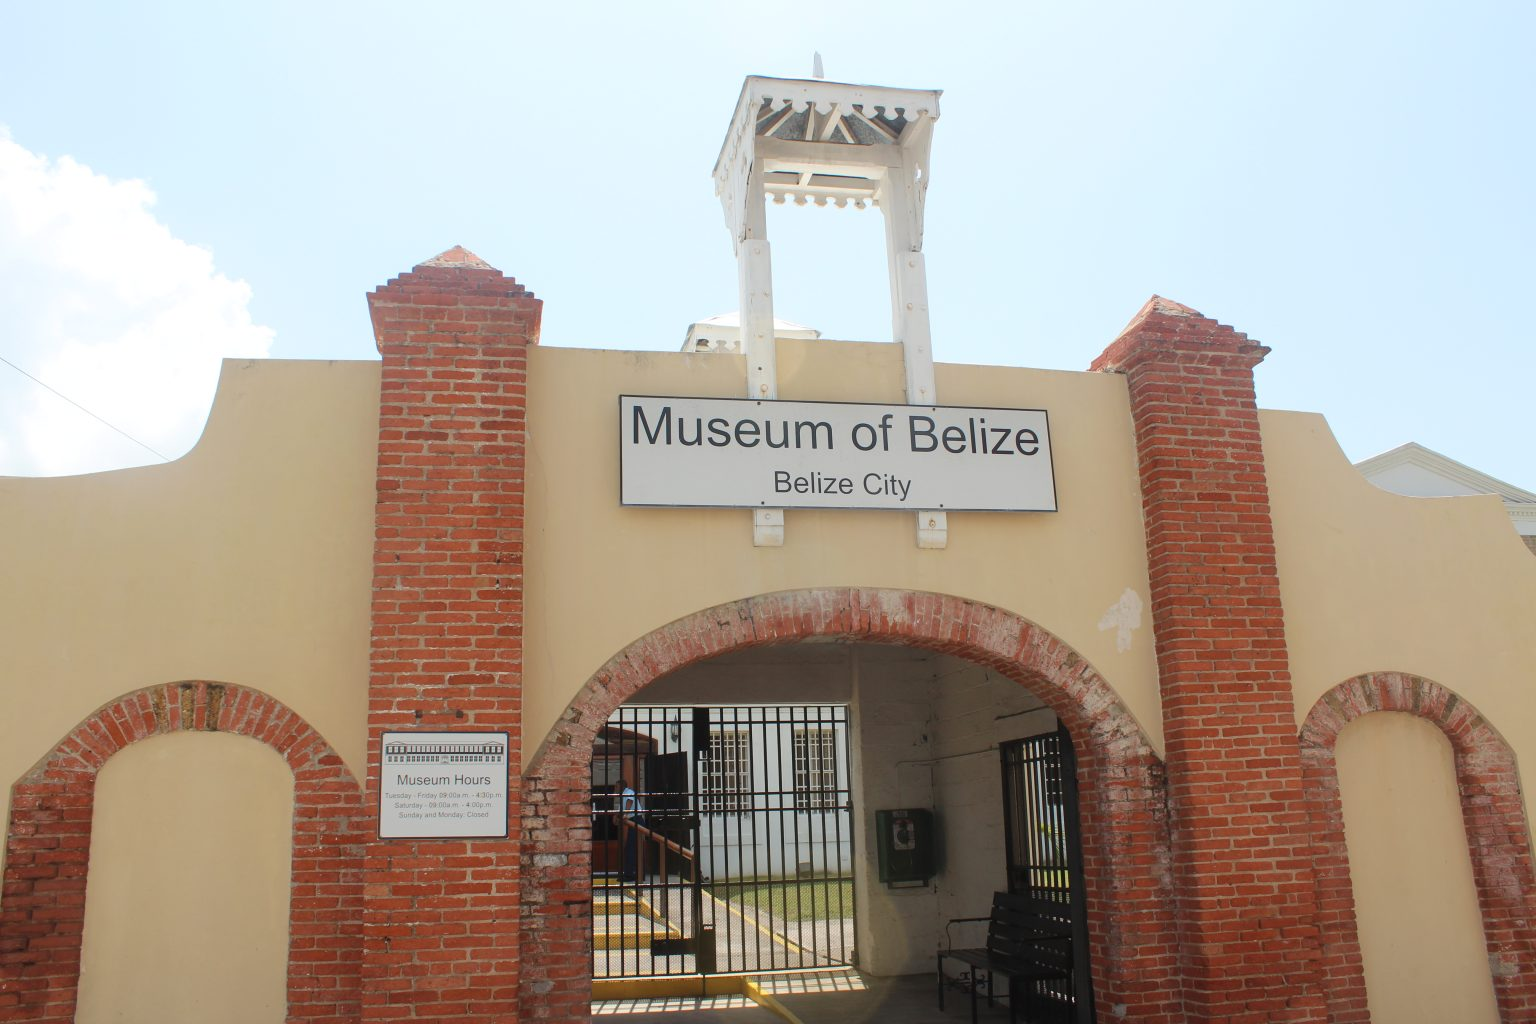 The Museum of Belize